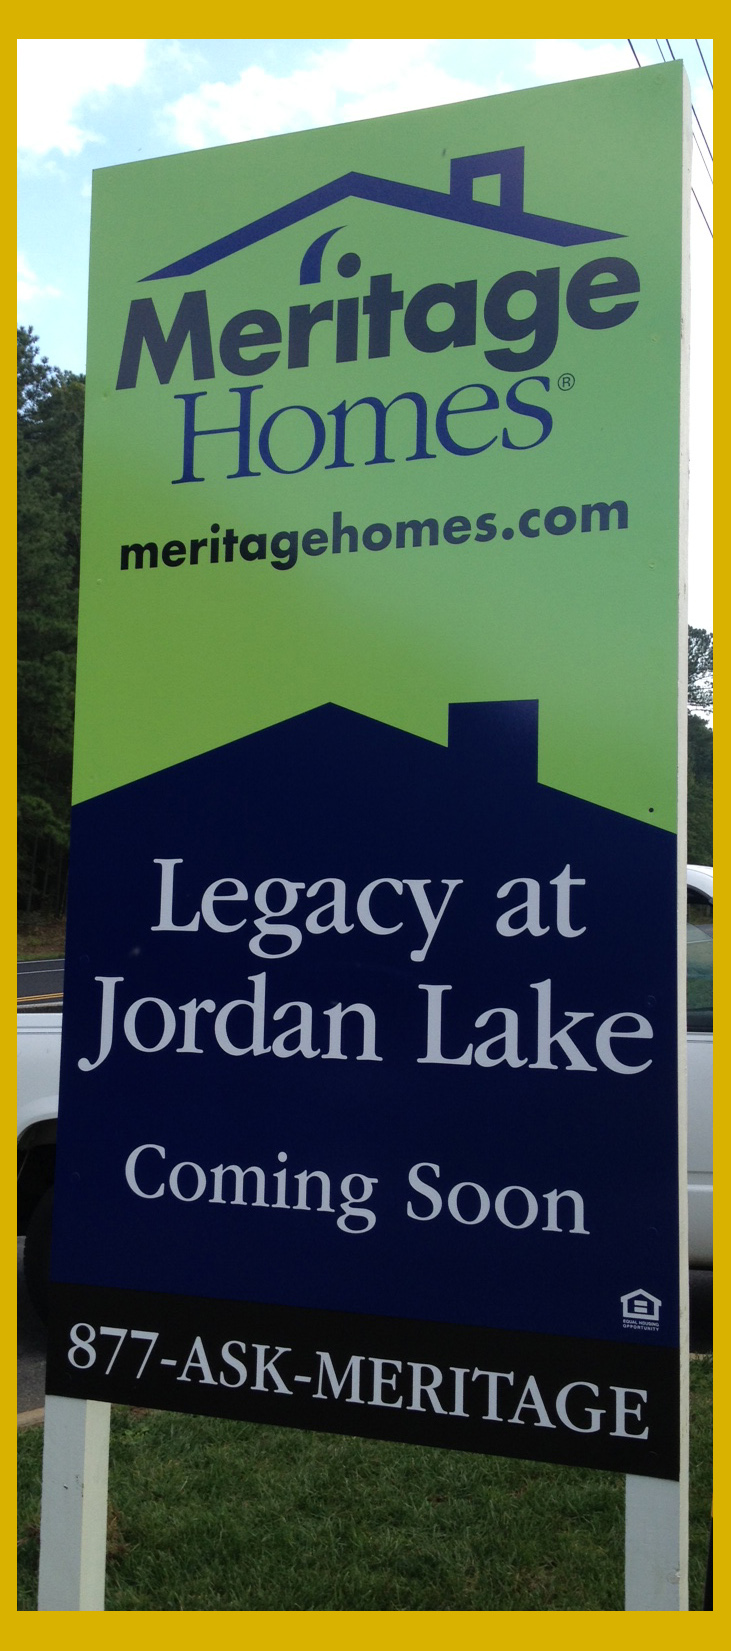 Meritage Homes Legacy at Jordan Lake sign